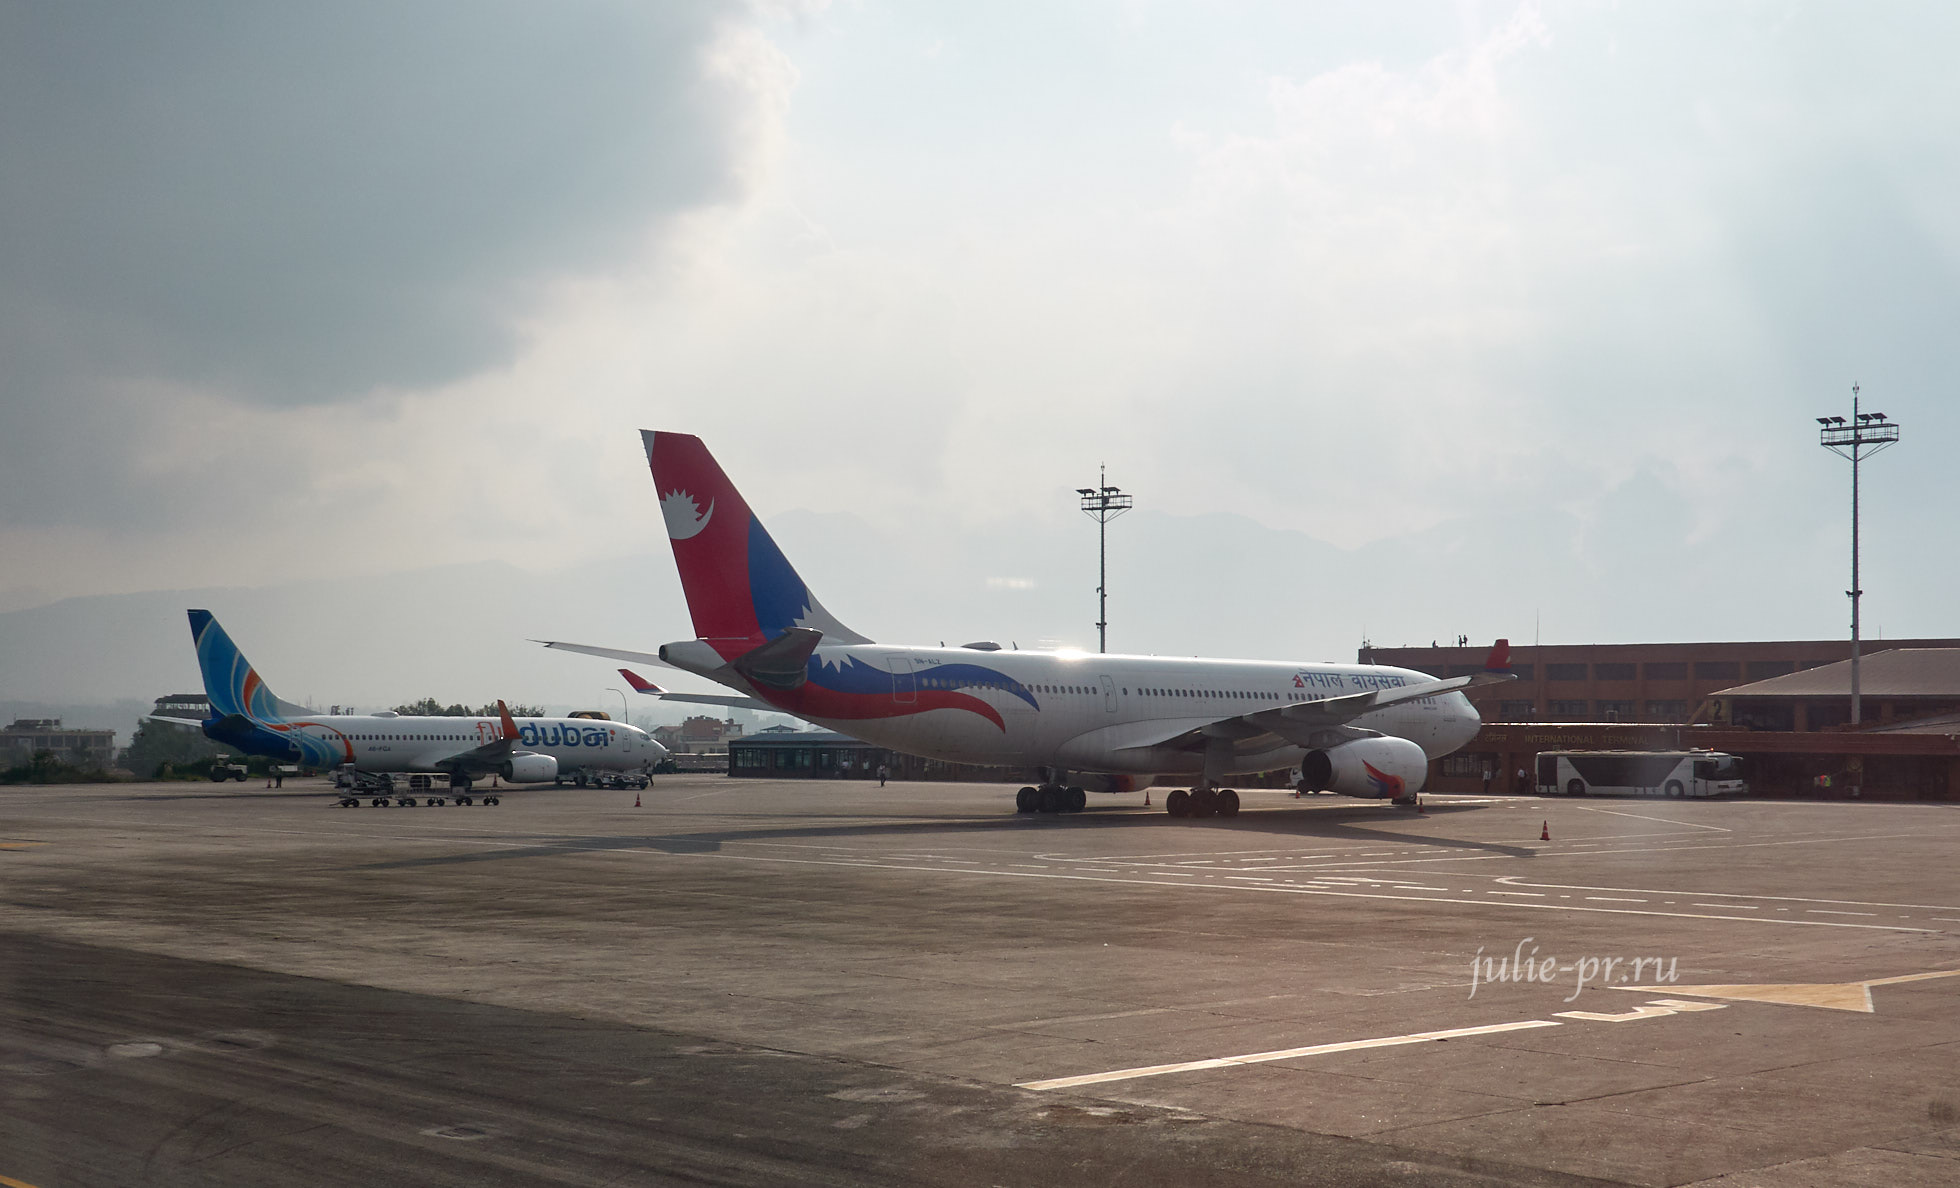 Непал, Катманду, Tribhuvan International Airport